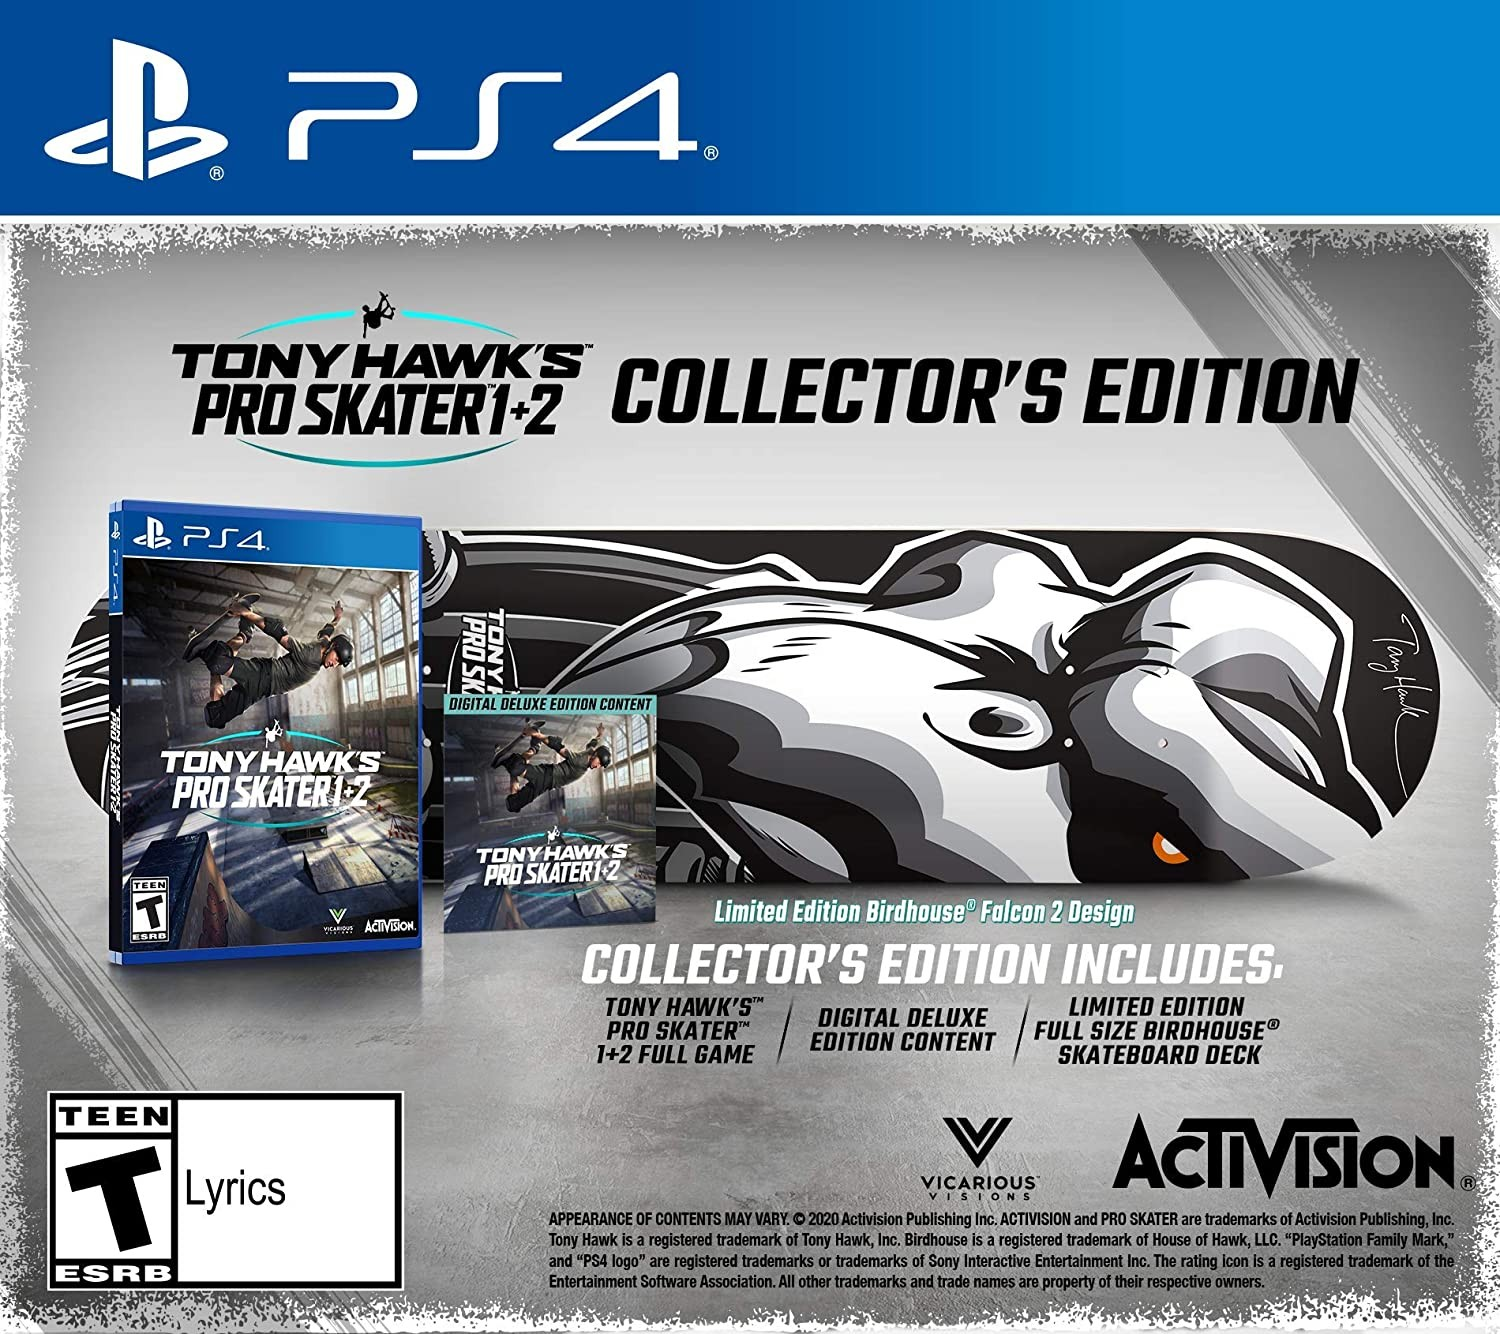 Tony Hawk's Pro Skater 1 + 2 Collector's Edition PS4